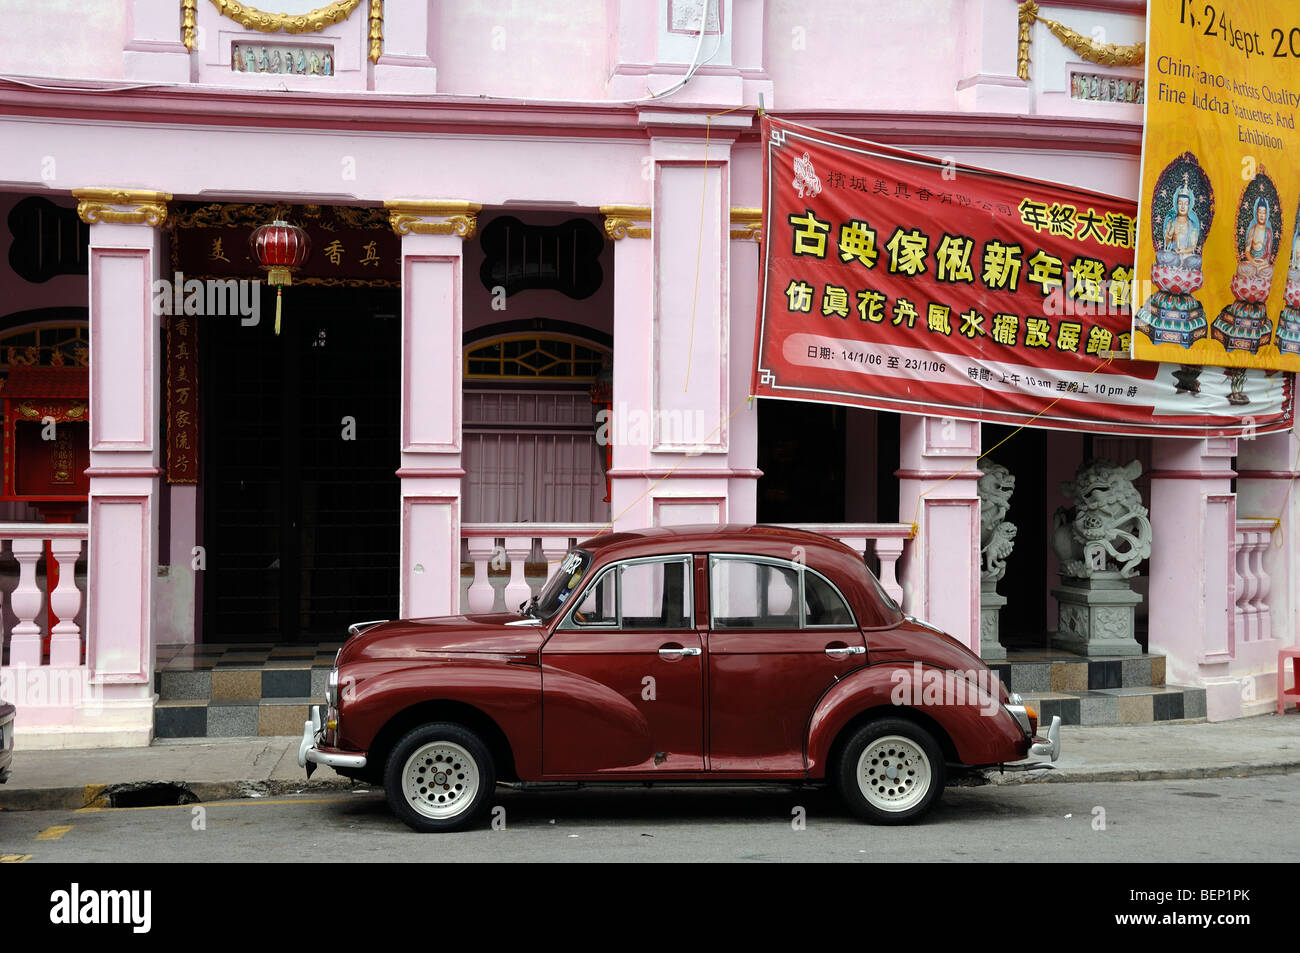 A Purple or Maroon Vintage Morris Minor Car Outside a Pink Chinese ...